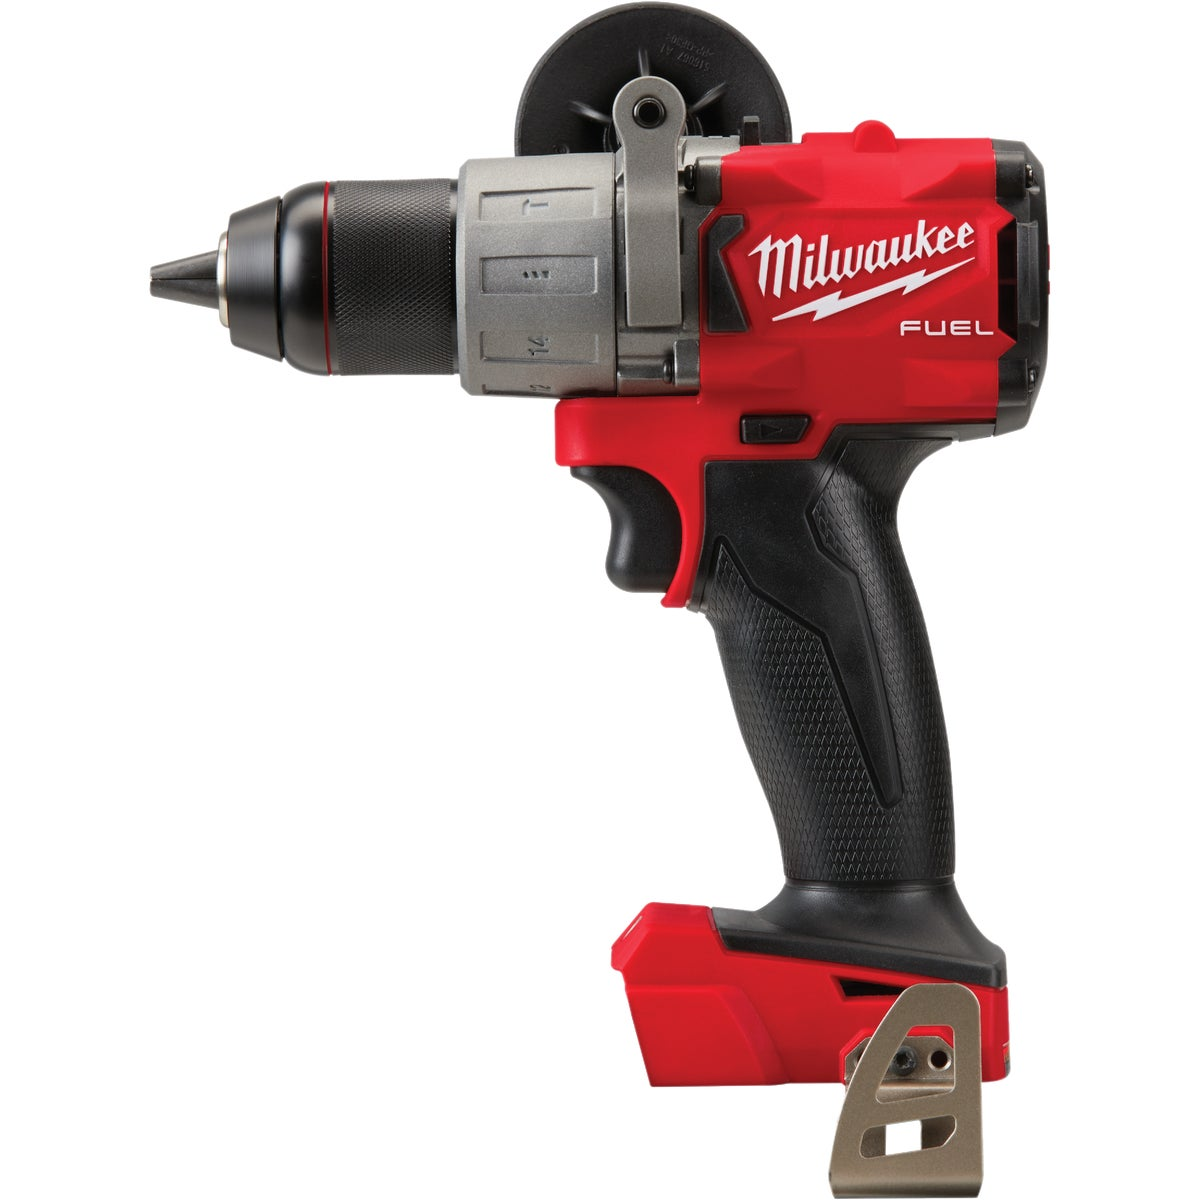 M18 HAMMER DRILL BARE - 261120 by Milwaukee Elec Tool